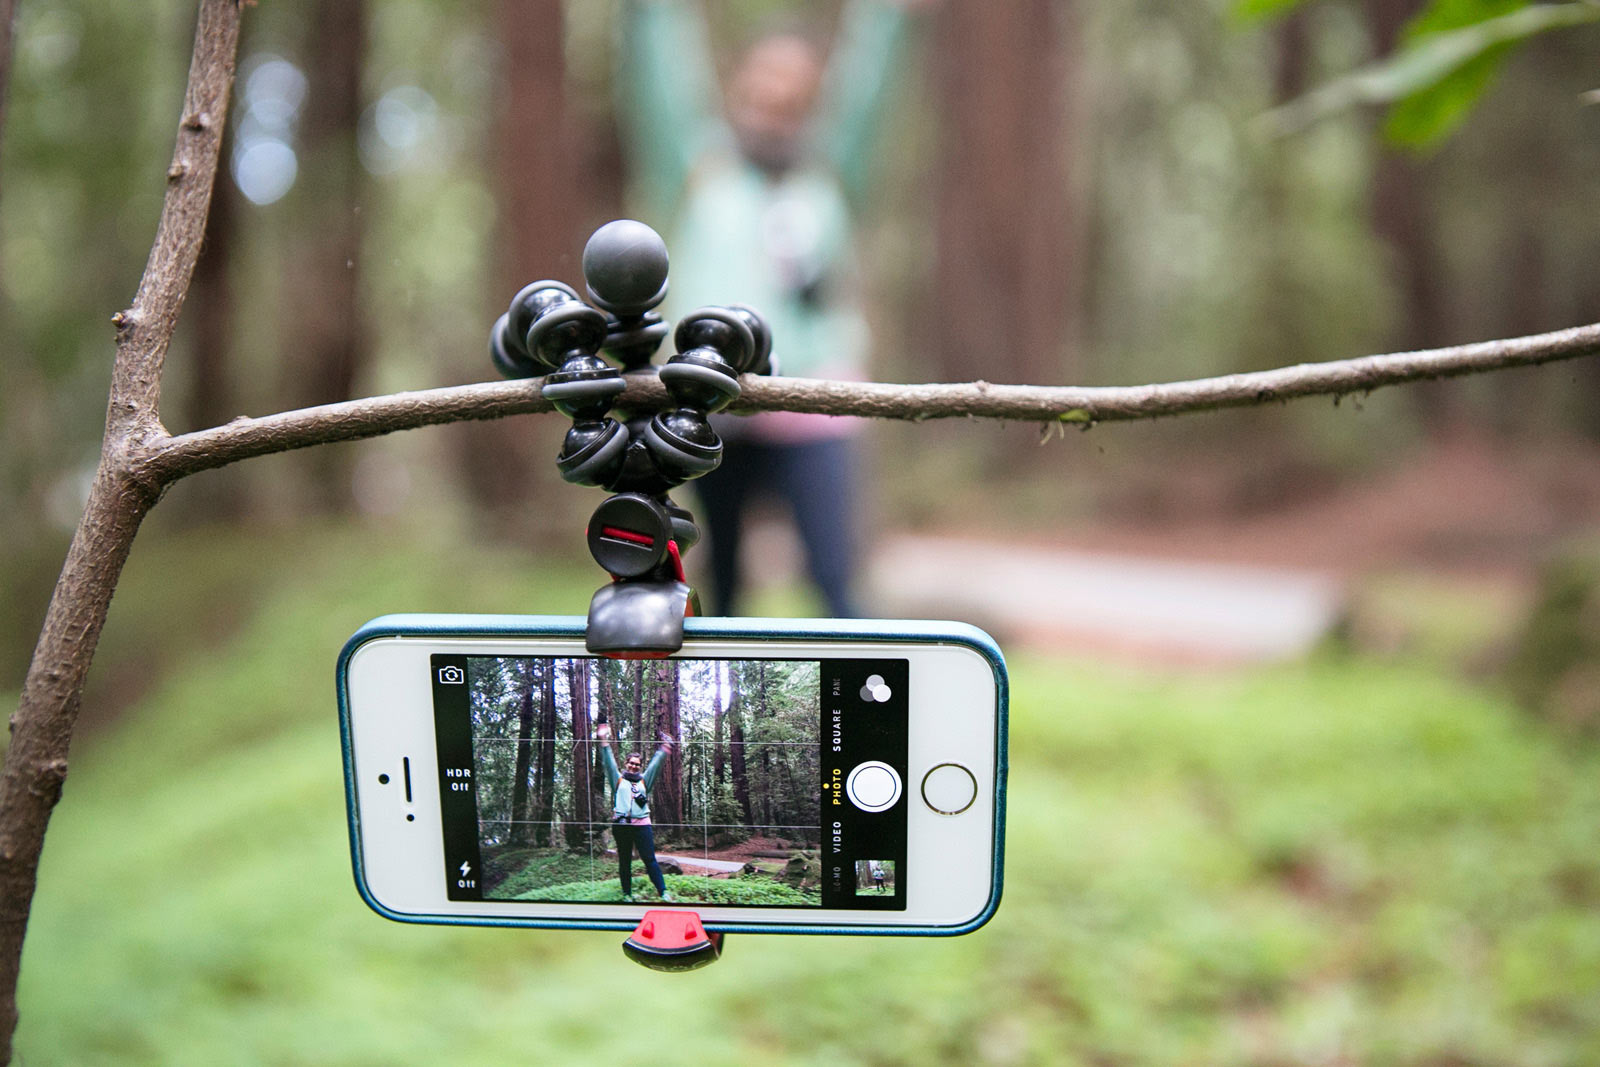 Gorilla pod for smart phones